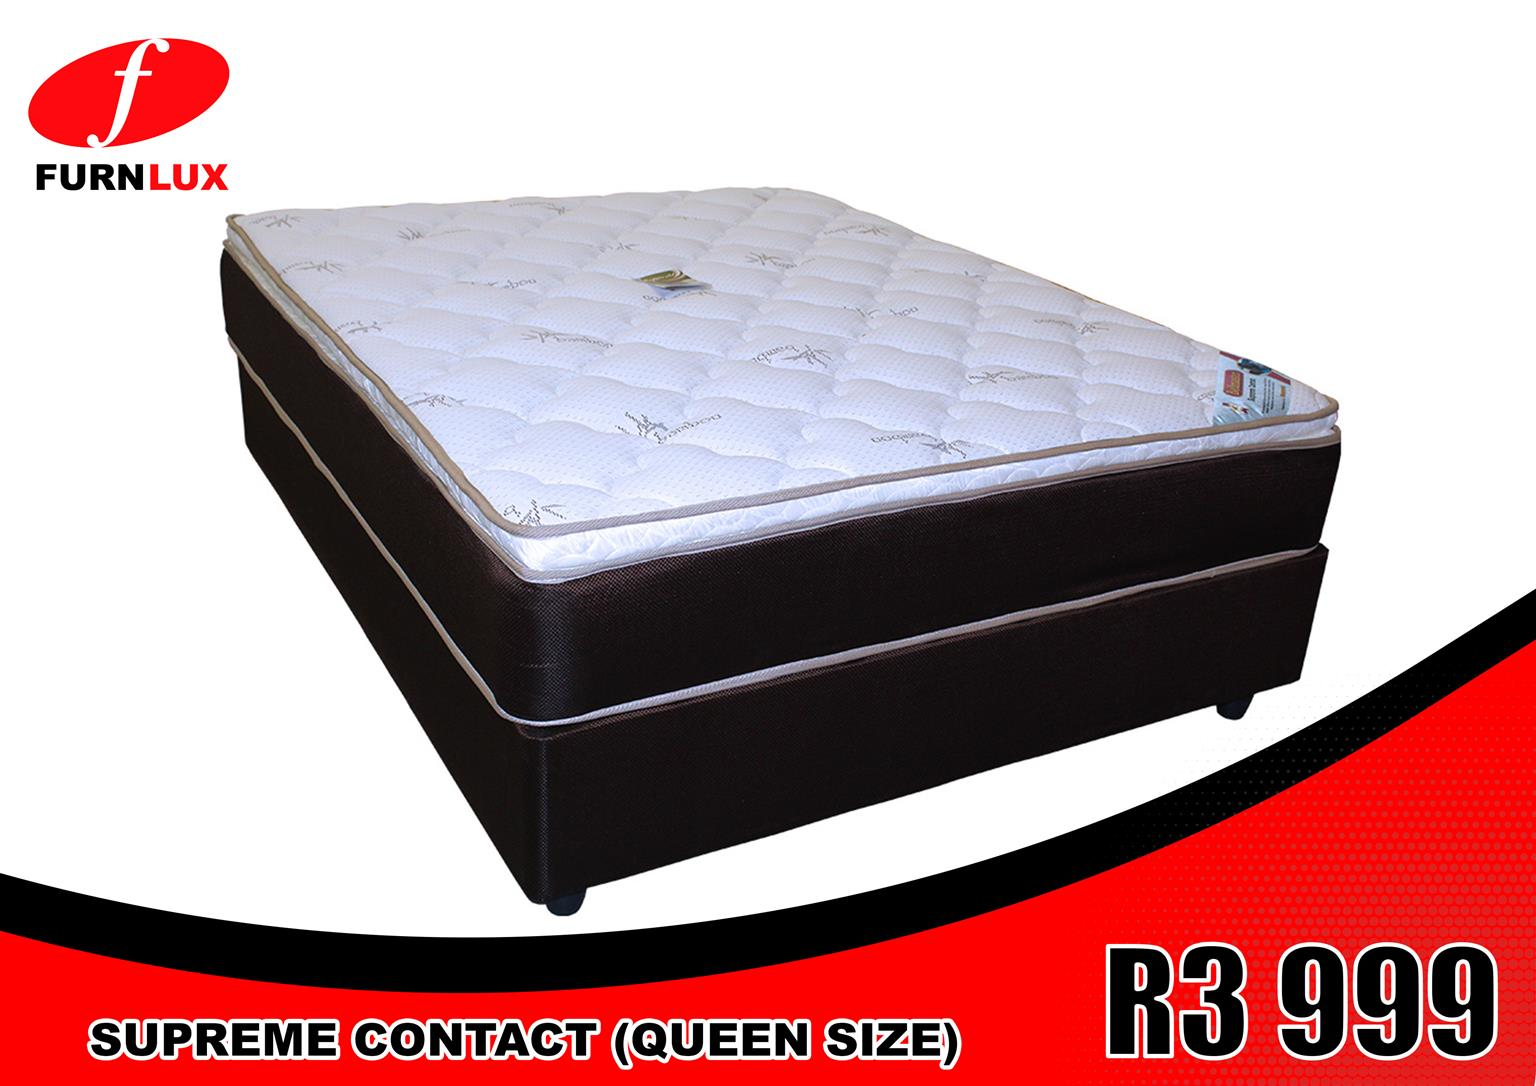 QUEEN SIZE BED SUPREME CONTACT BRAND NEW!!!! FOR ONLY R3 999